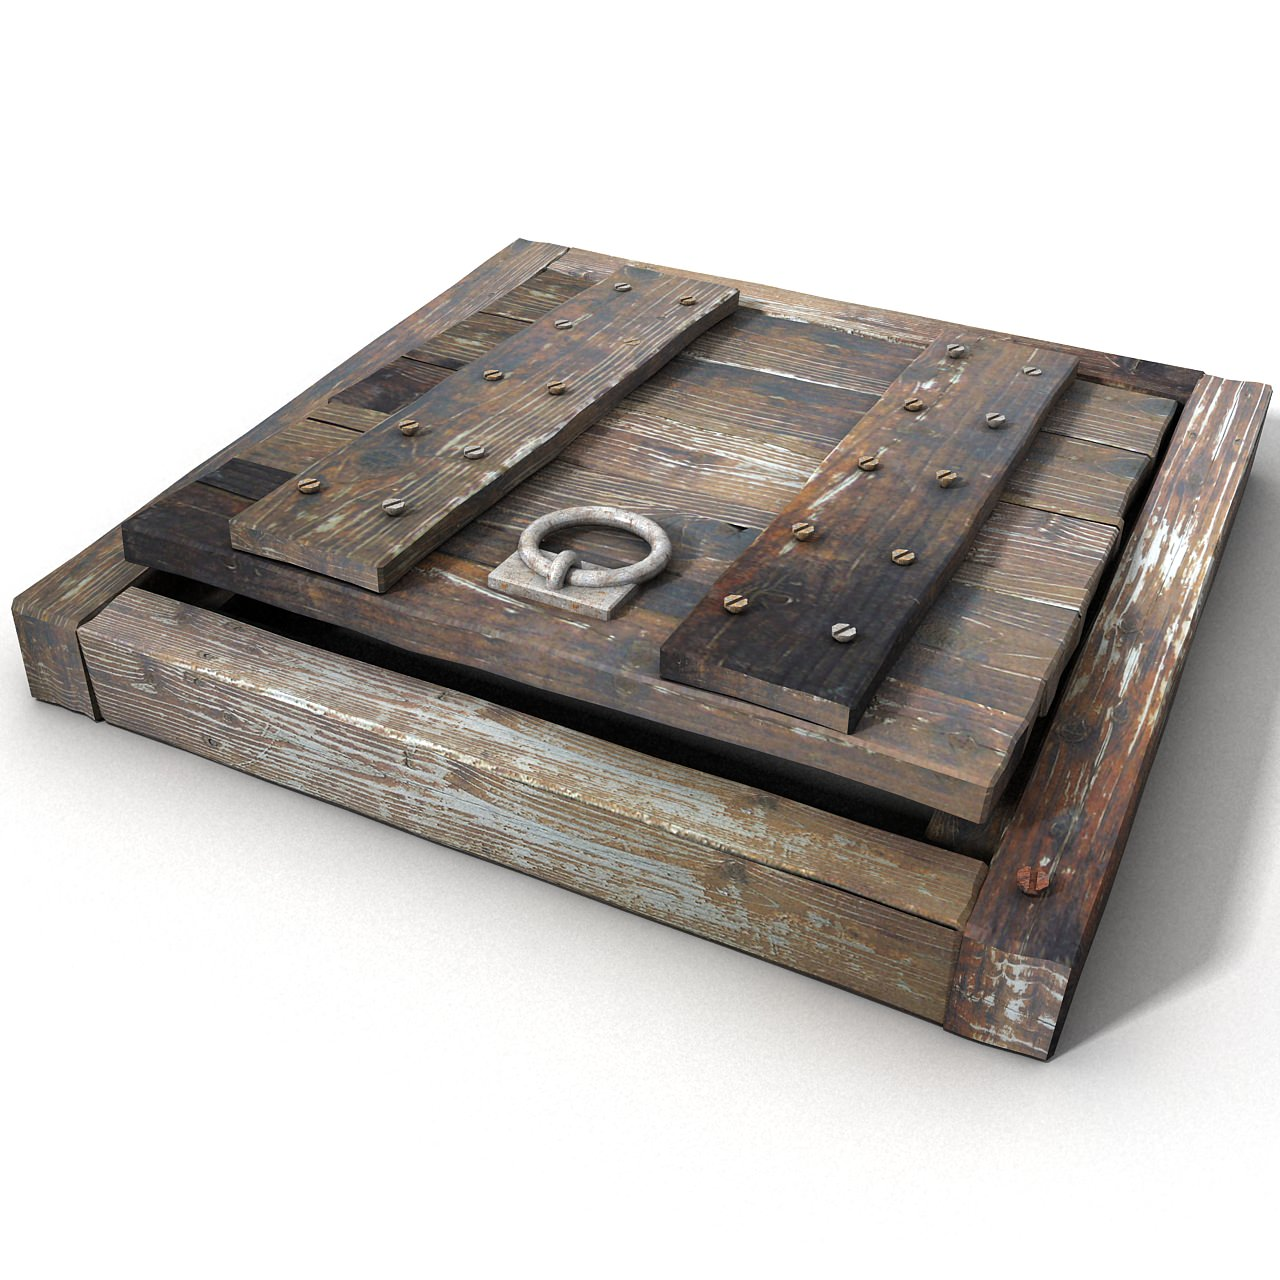 Wooden Trap Door Pictures to Pin on Pinterest - PinsDaddy